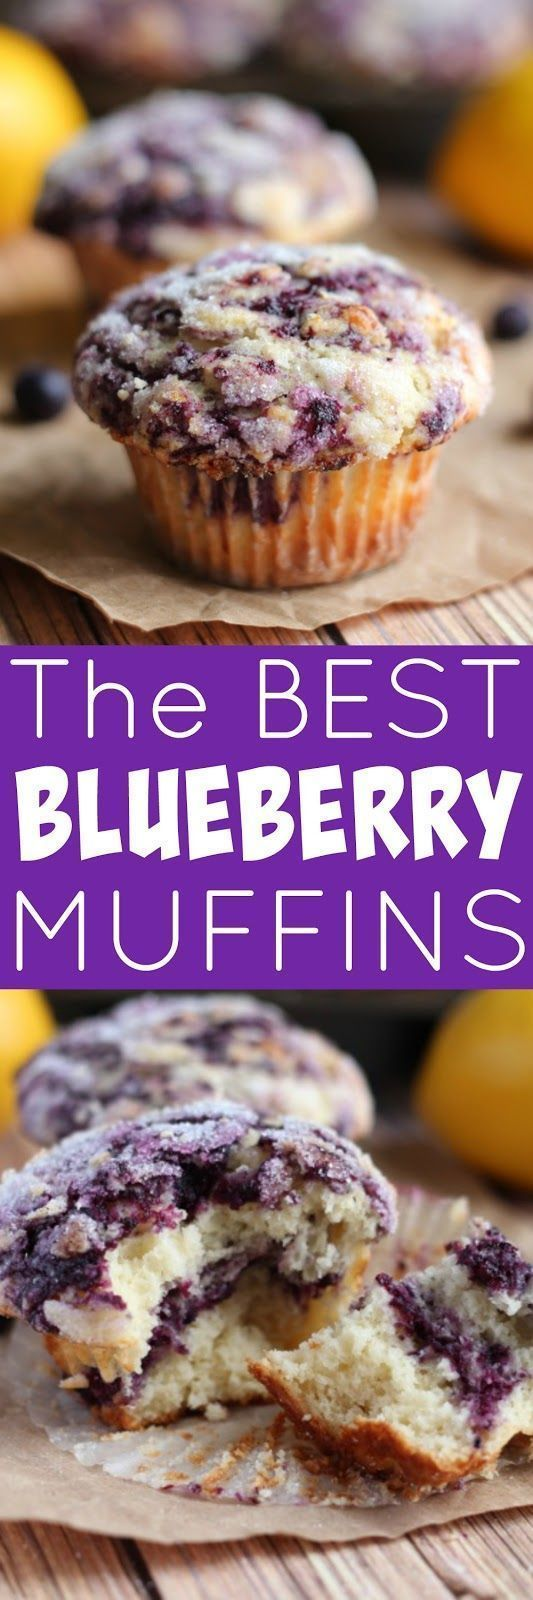 The Best Blueberry Muffins Best Blueberry Muffins Blueberry Recipes Baking